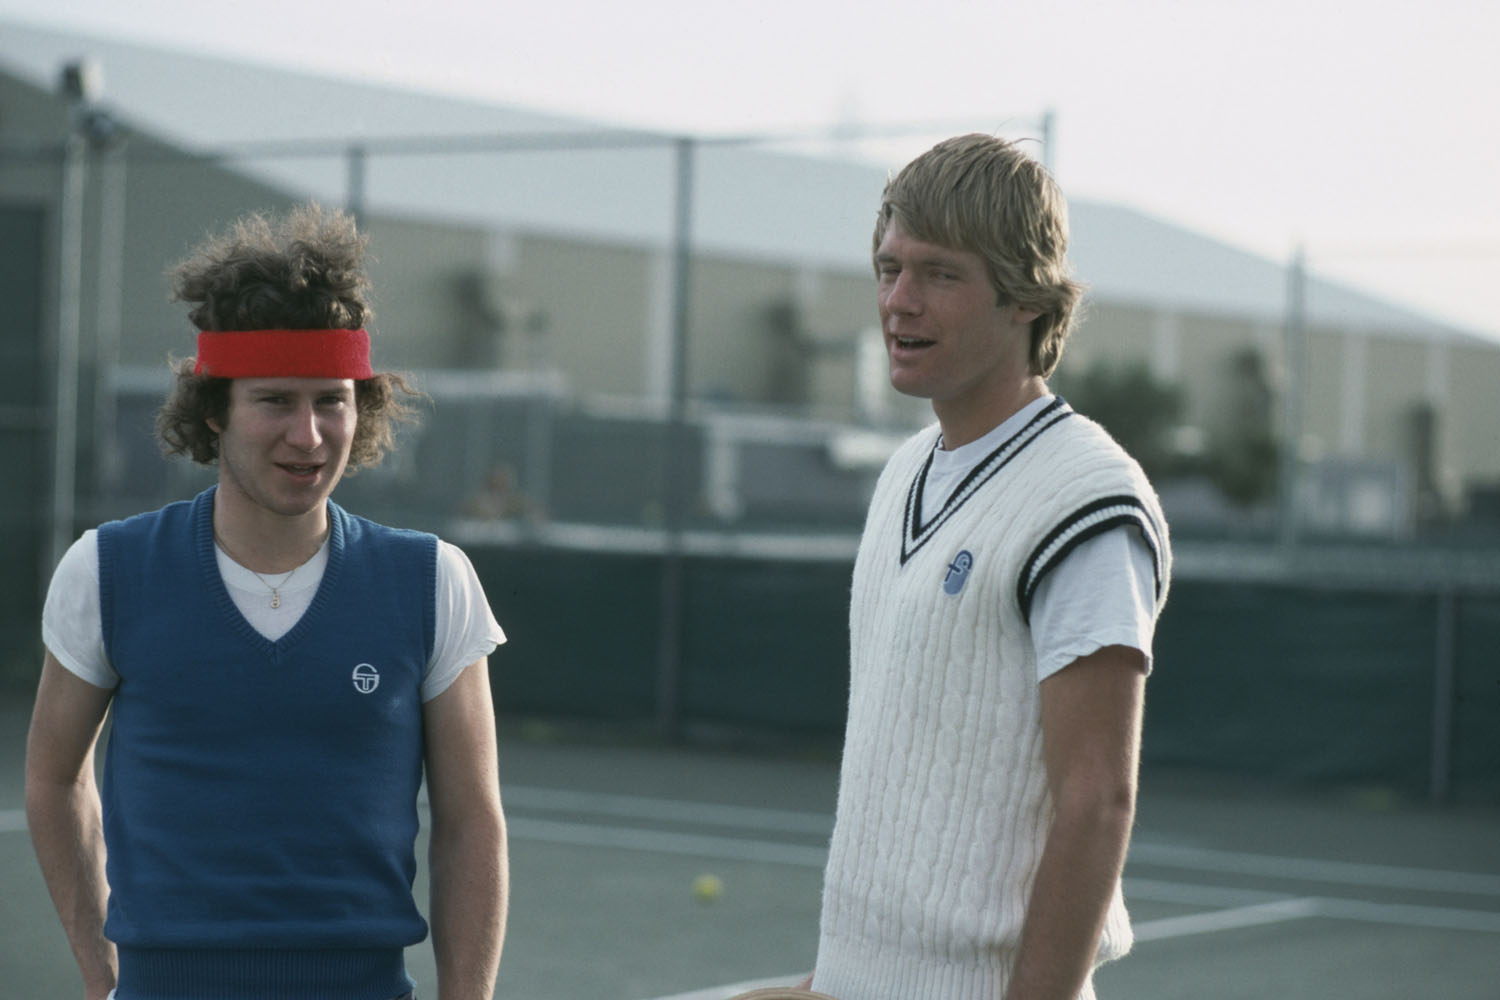 Professional tennis star John McEnroe in training with his personal coach.